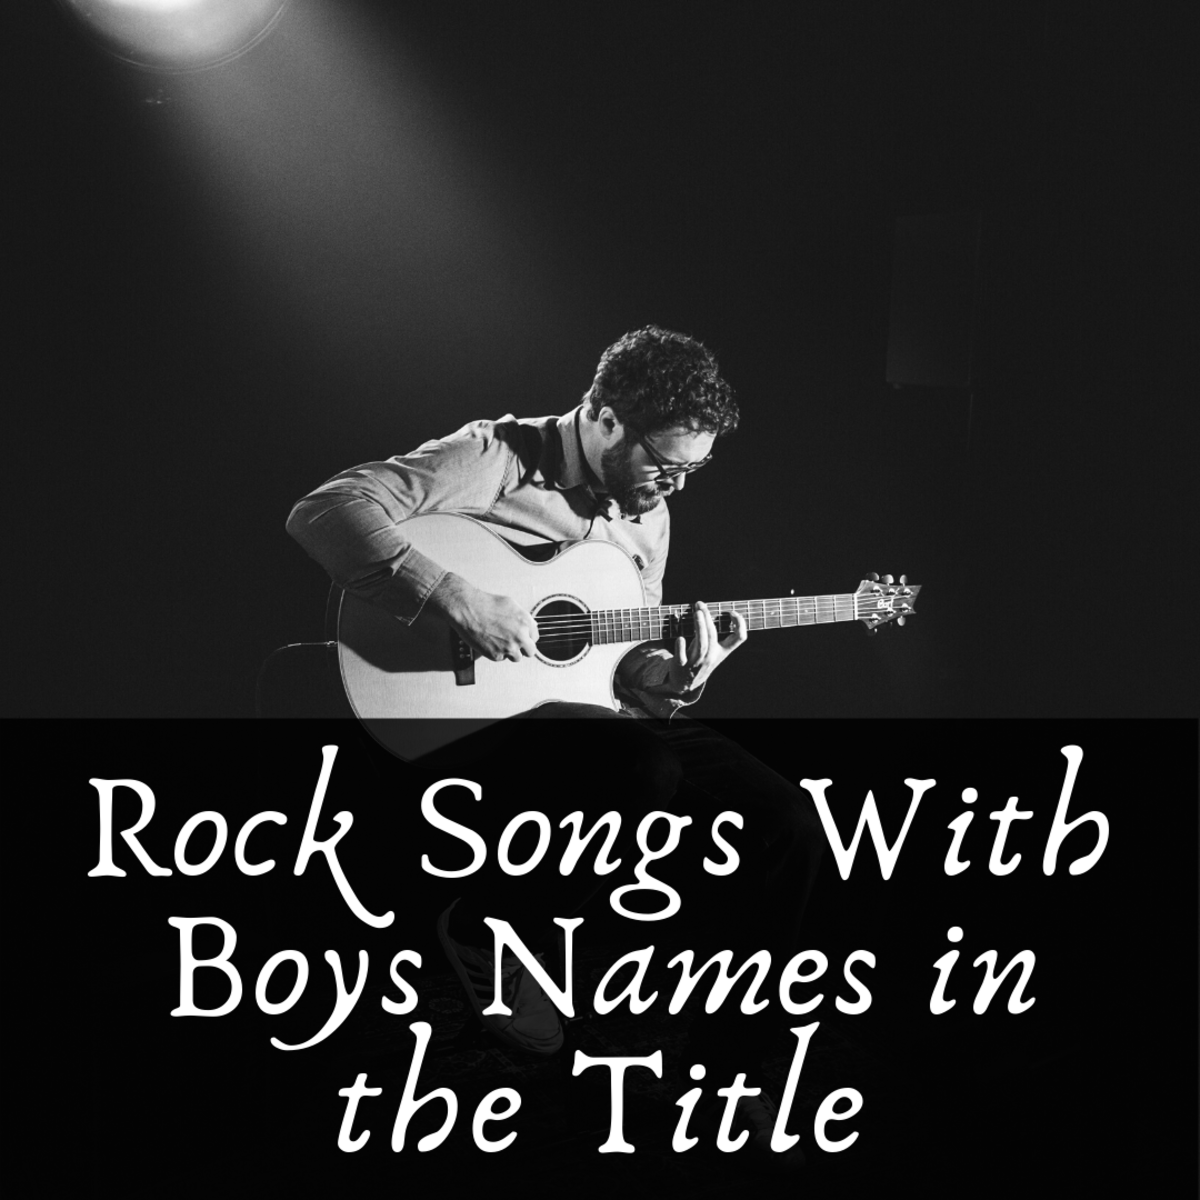 See if your favorite boy's name can be found somewhere on this great list of songs.